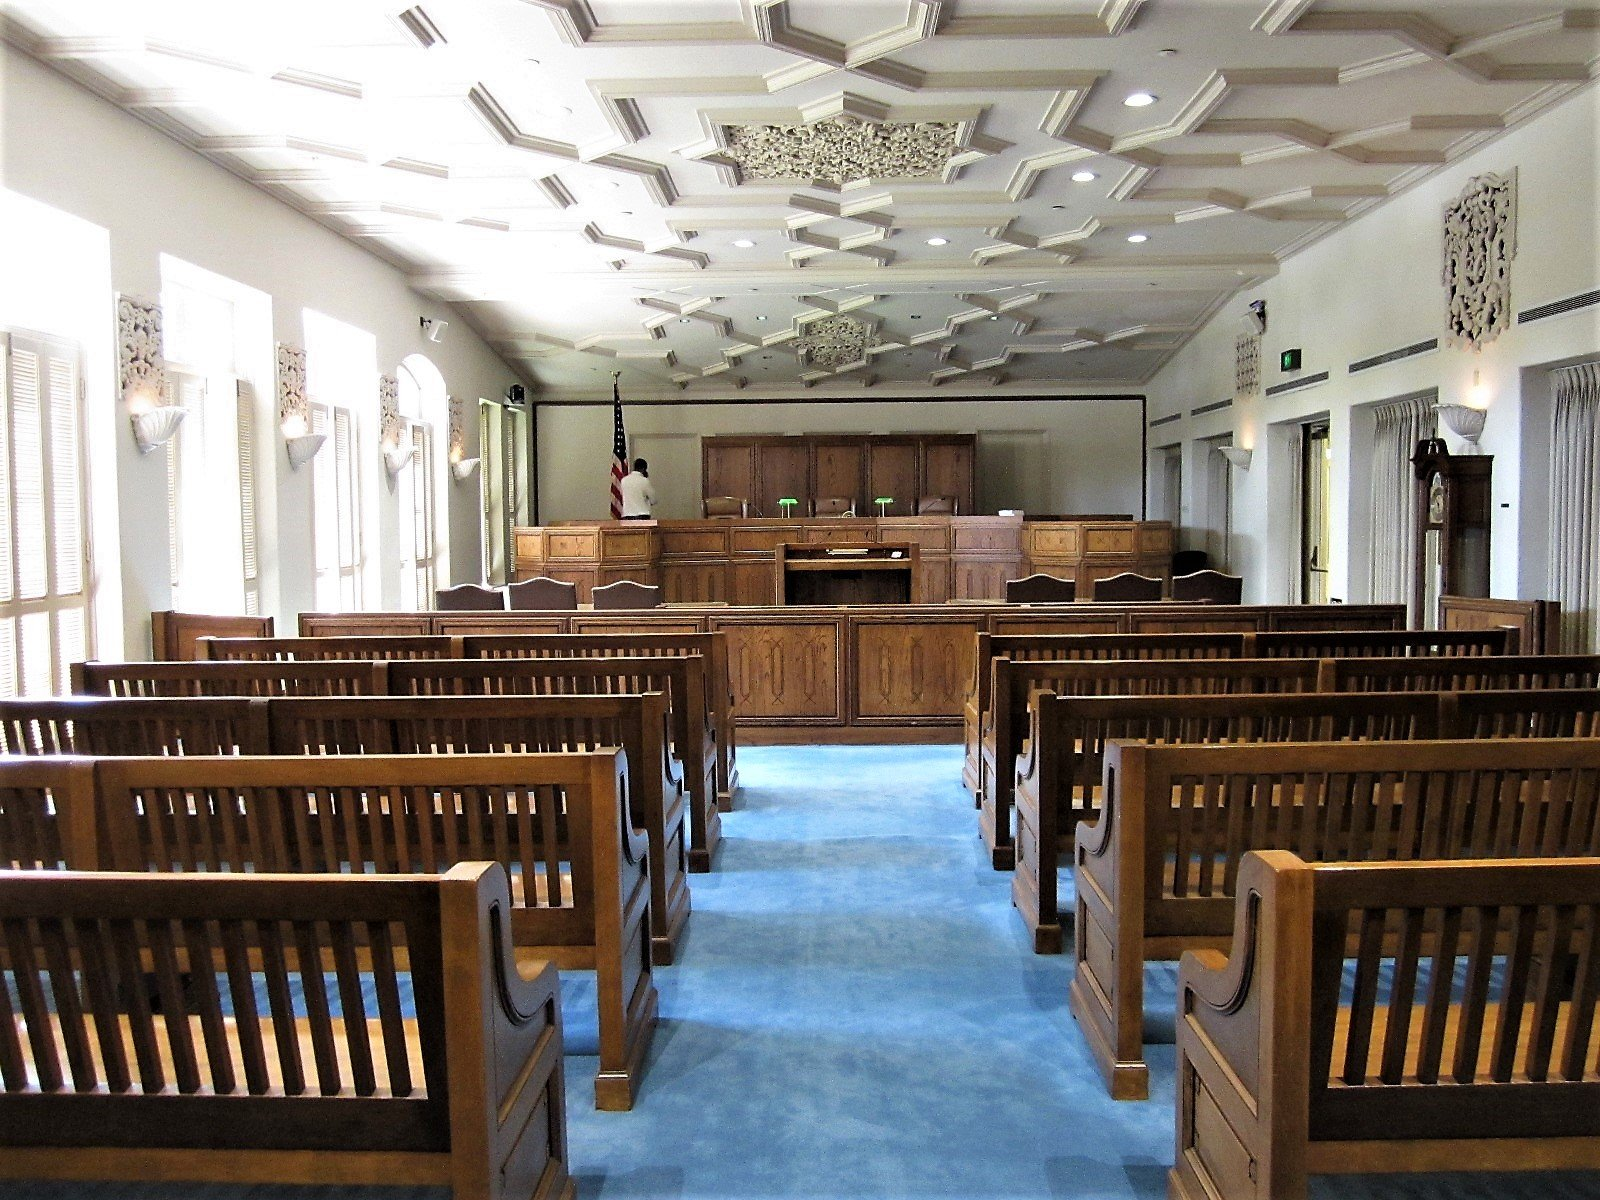 4 Questions to Ask When Constructing a New Courtroom